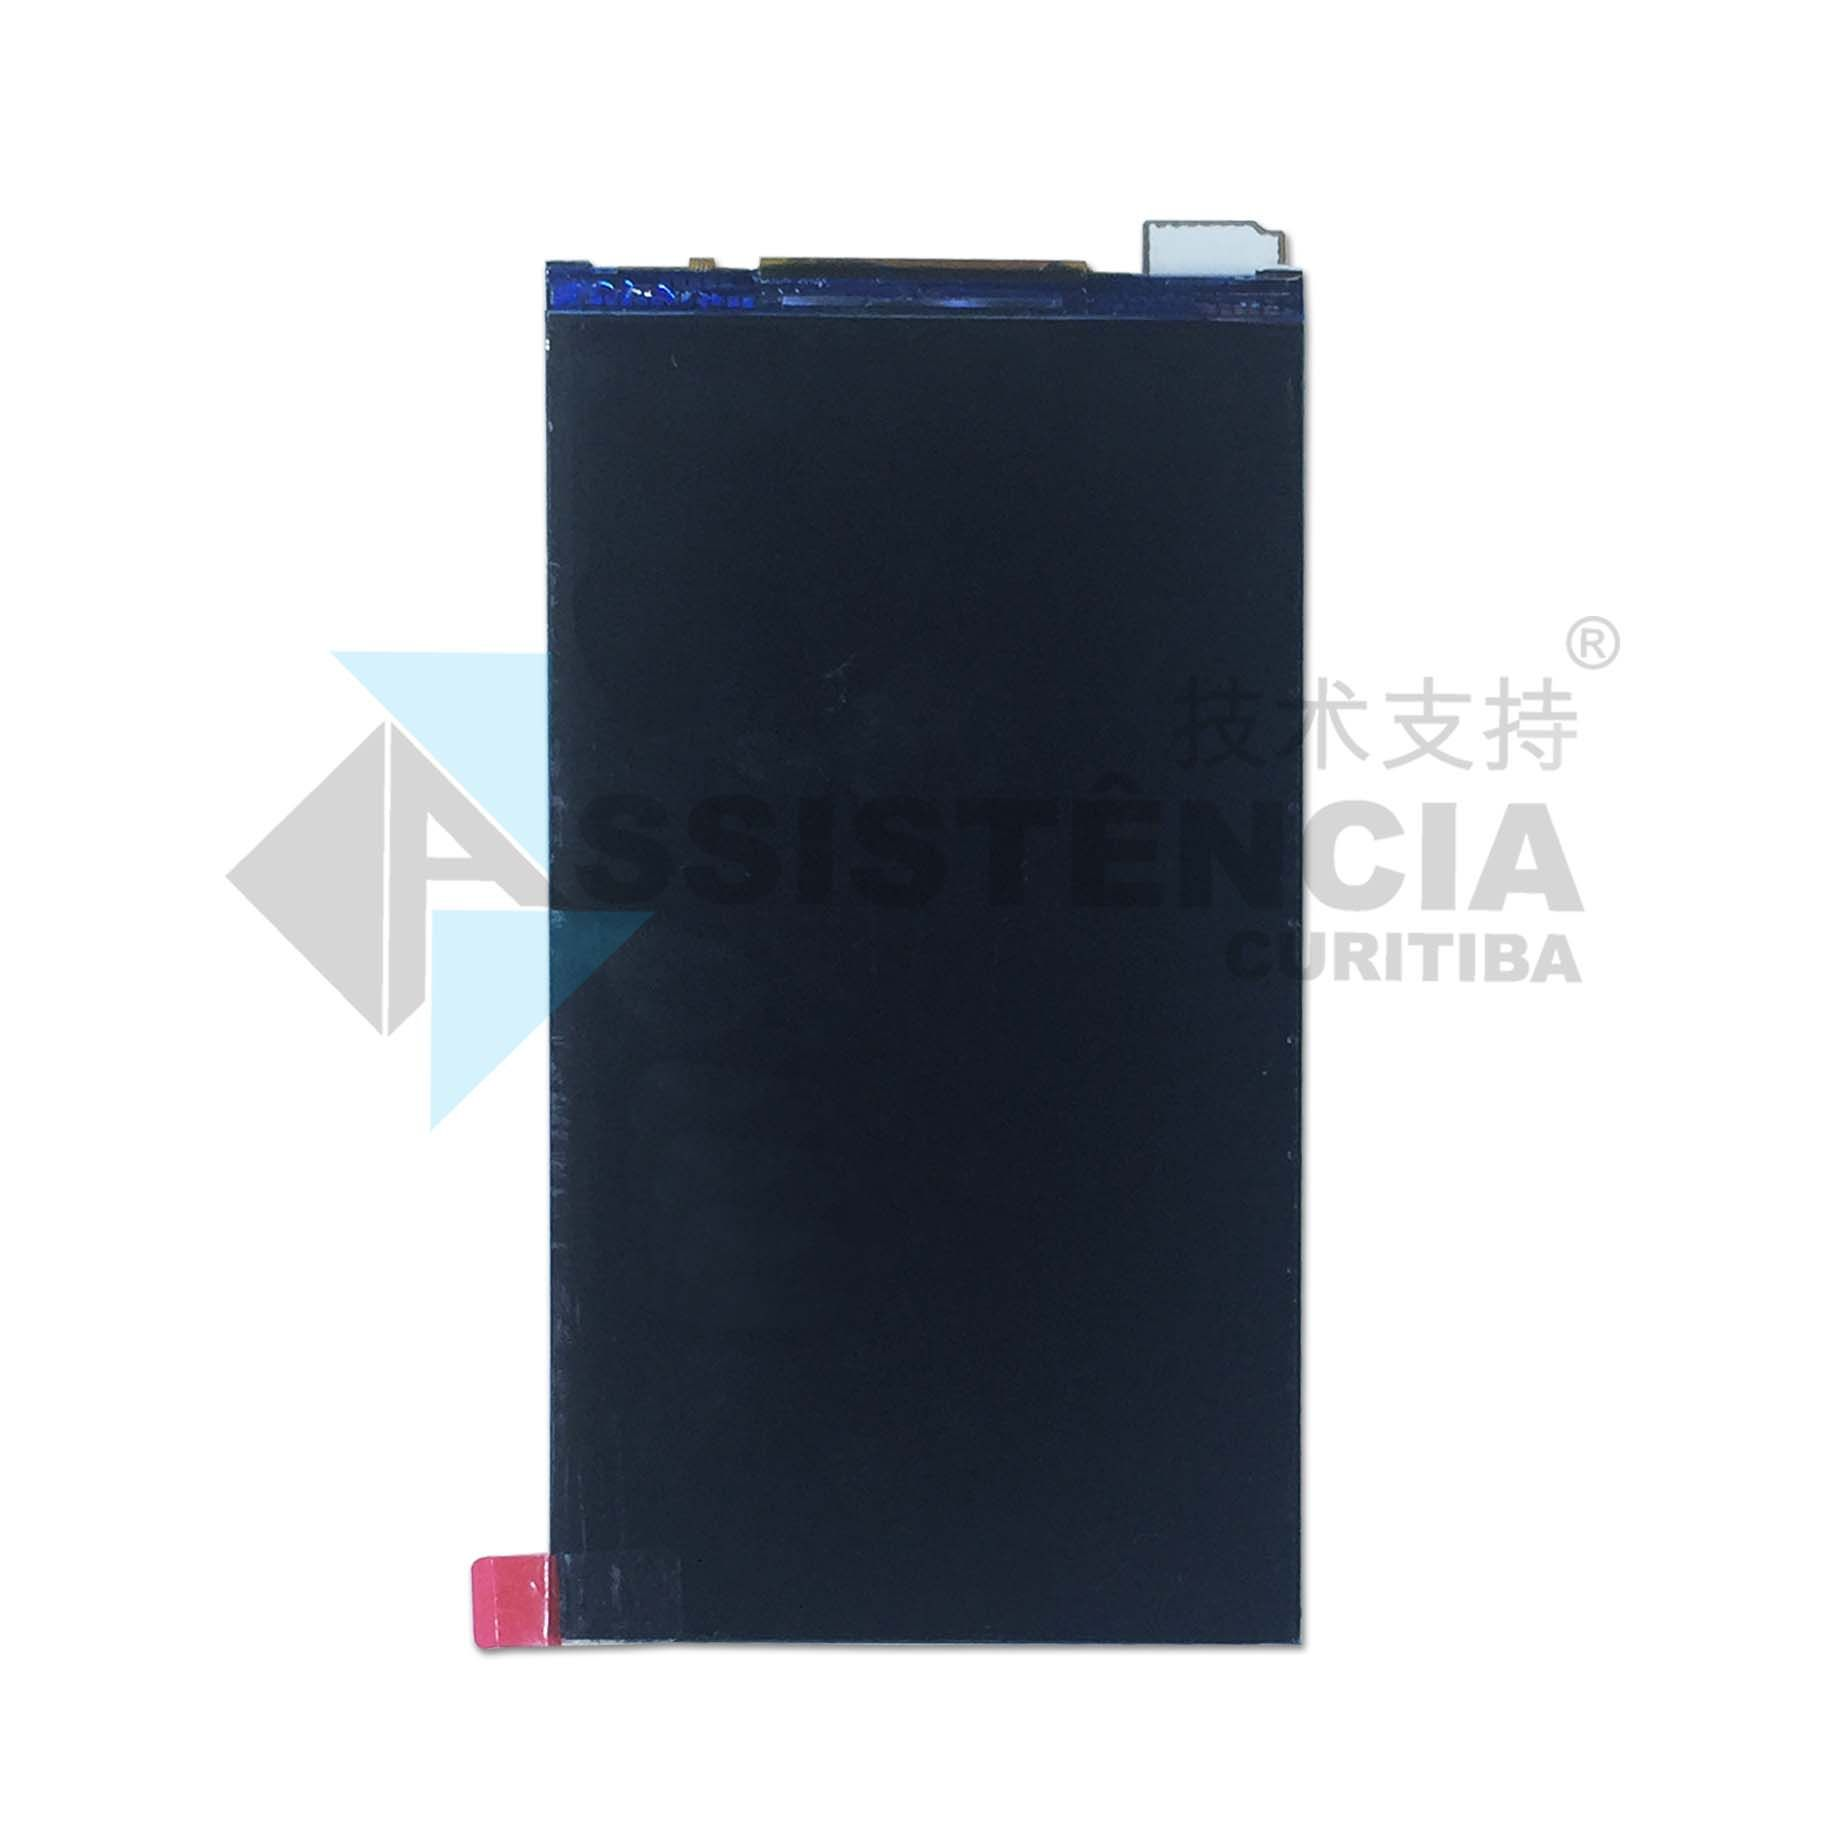 TELA DISPLAY LCD CELULAR POSITIVO TWIST S509 S511 BT-S511